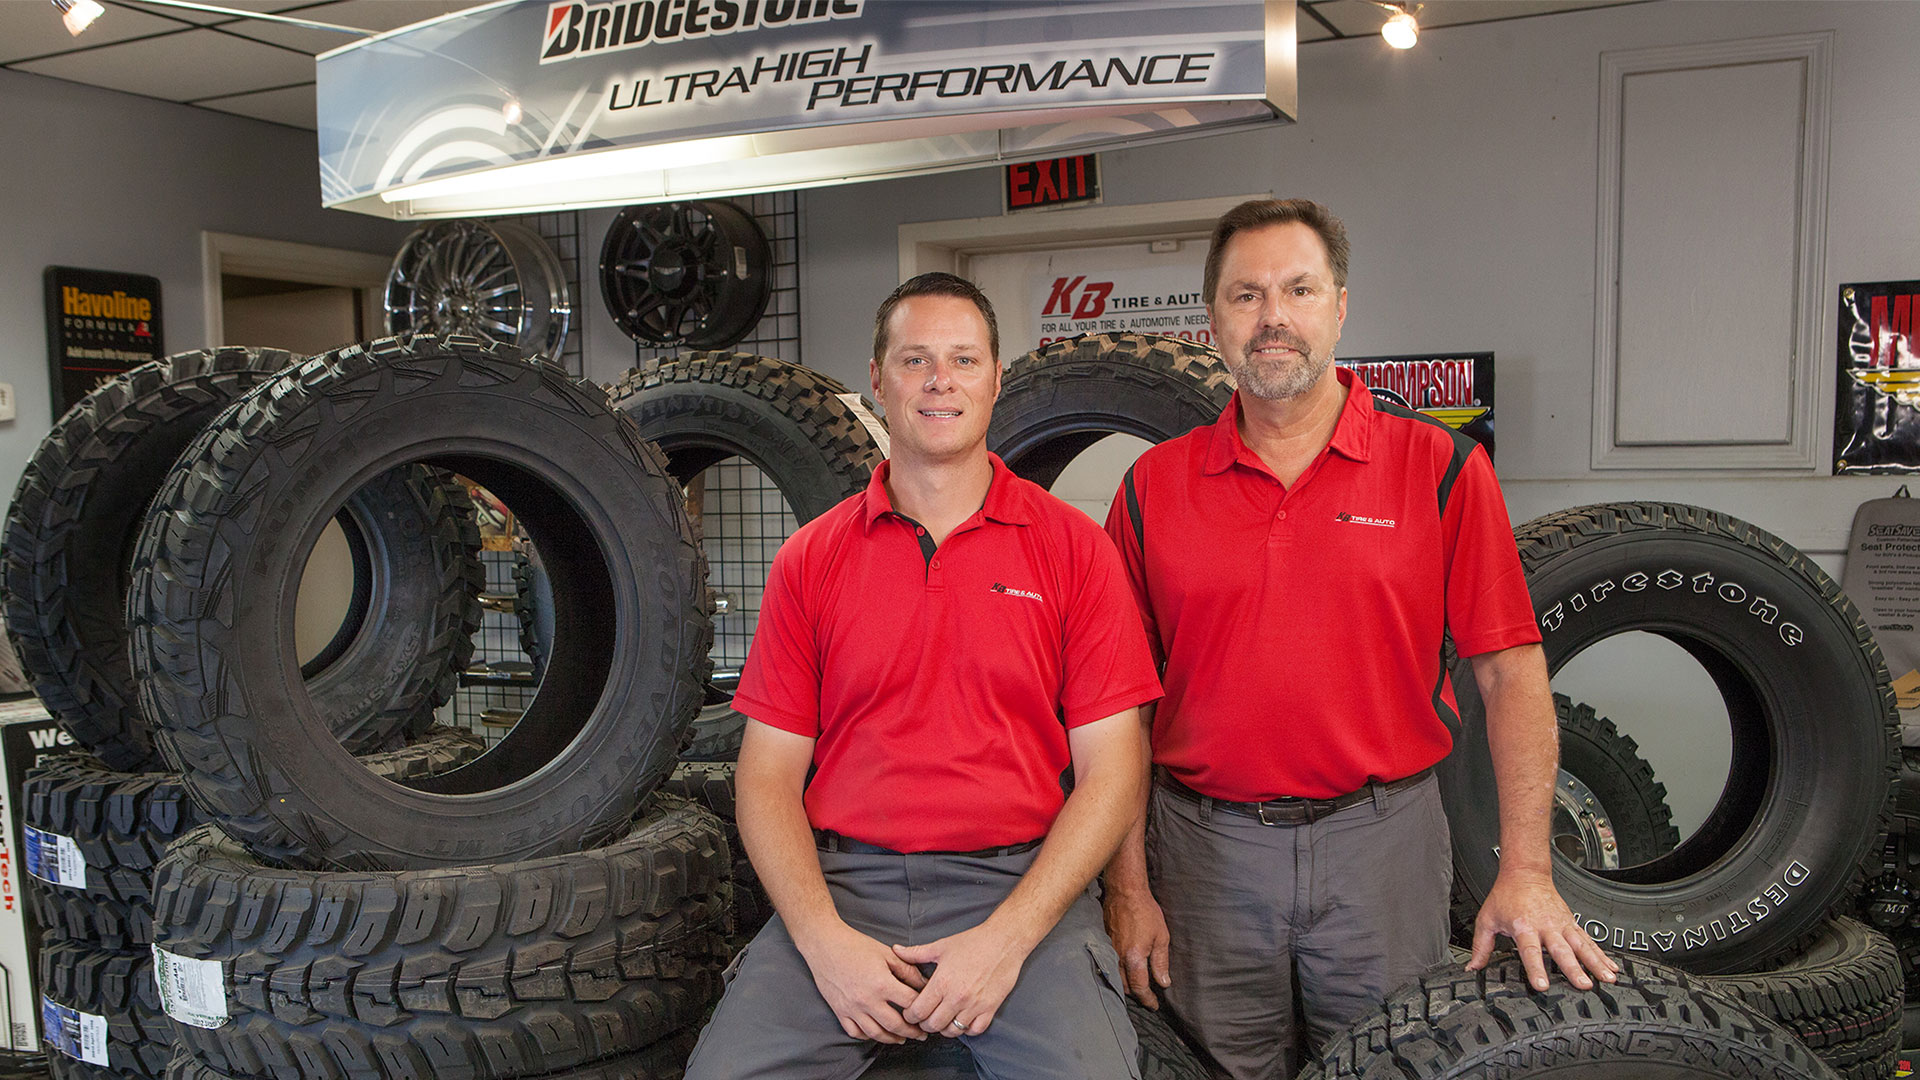 Owners of KB Tire & Auto posing with tire display